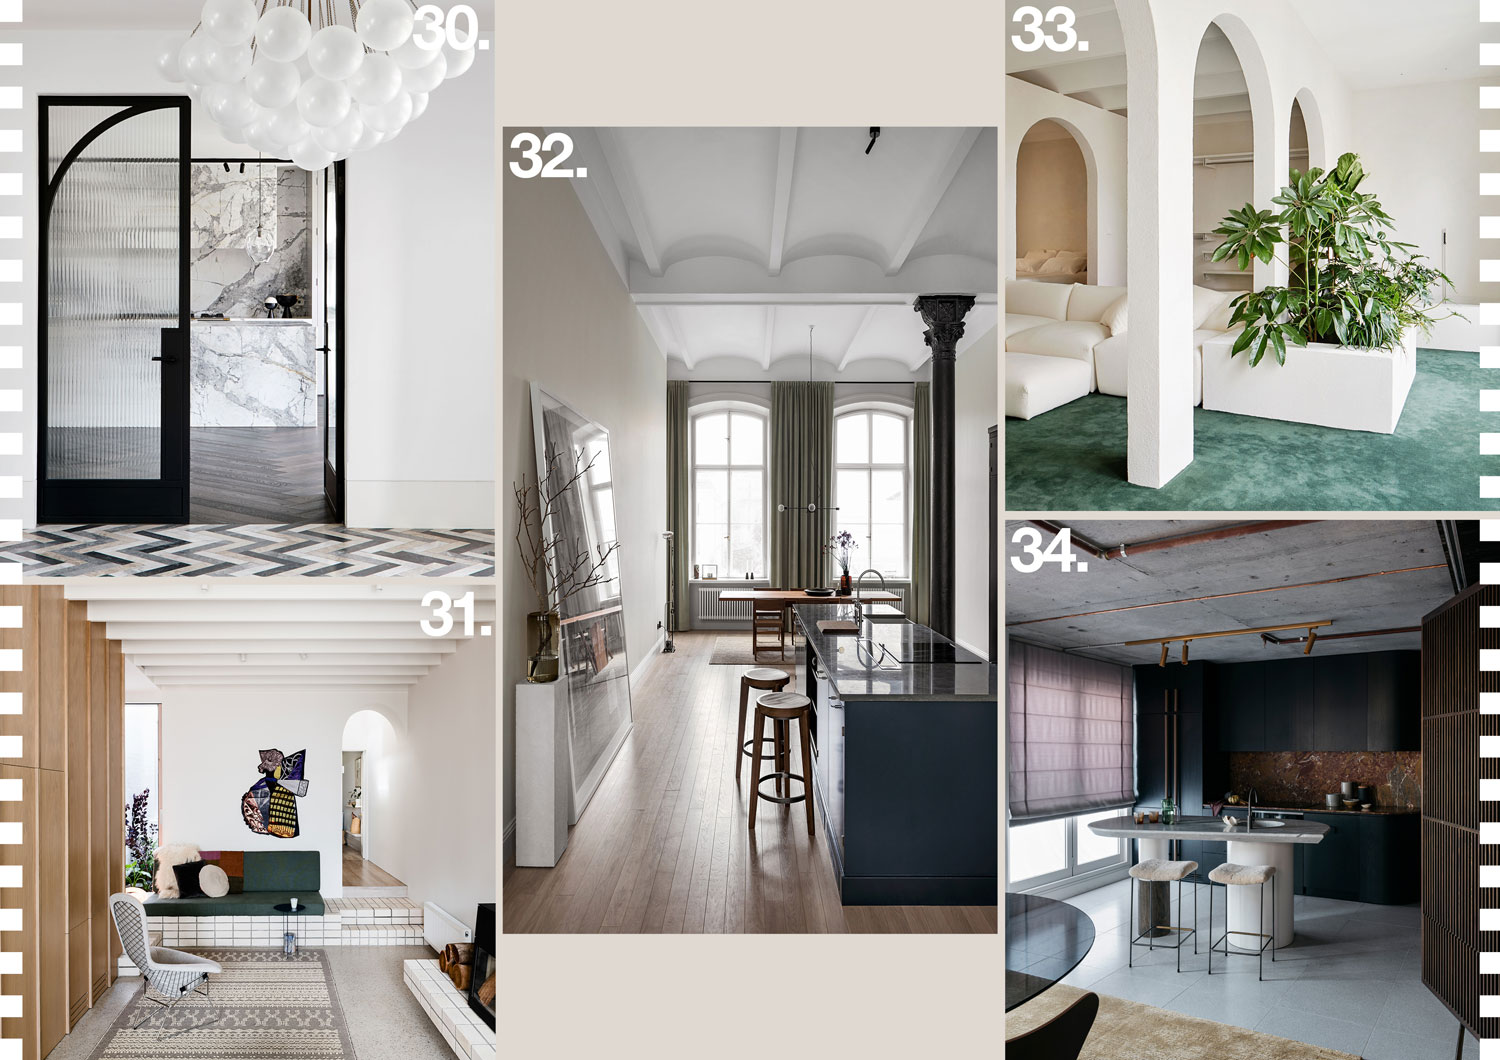 Residential Interior Design 2019 Archive | Yellowtrace